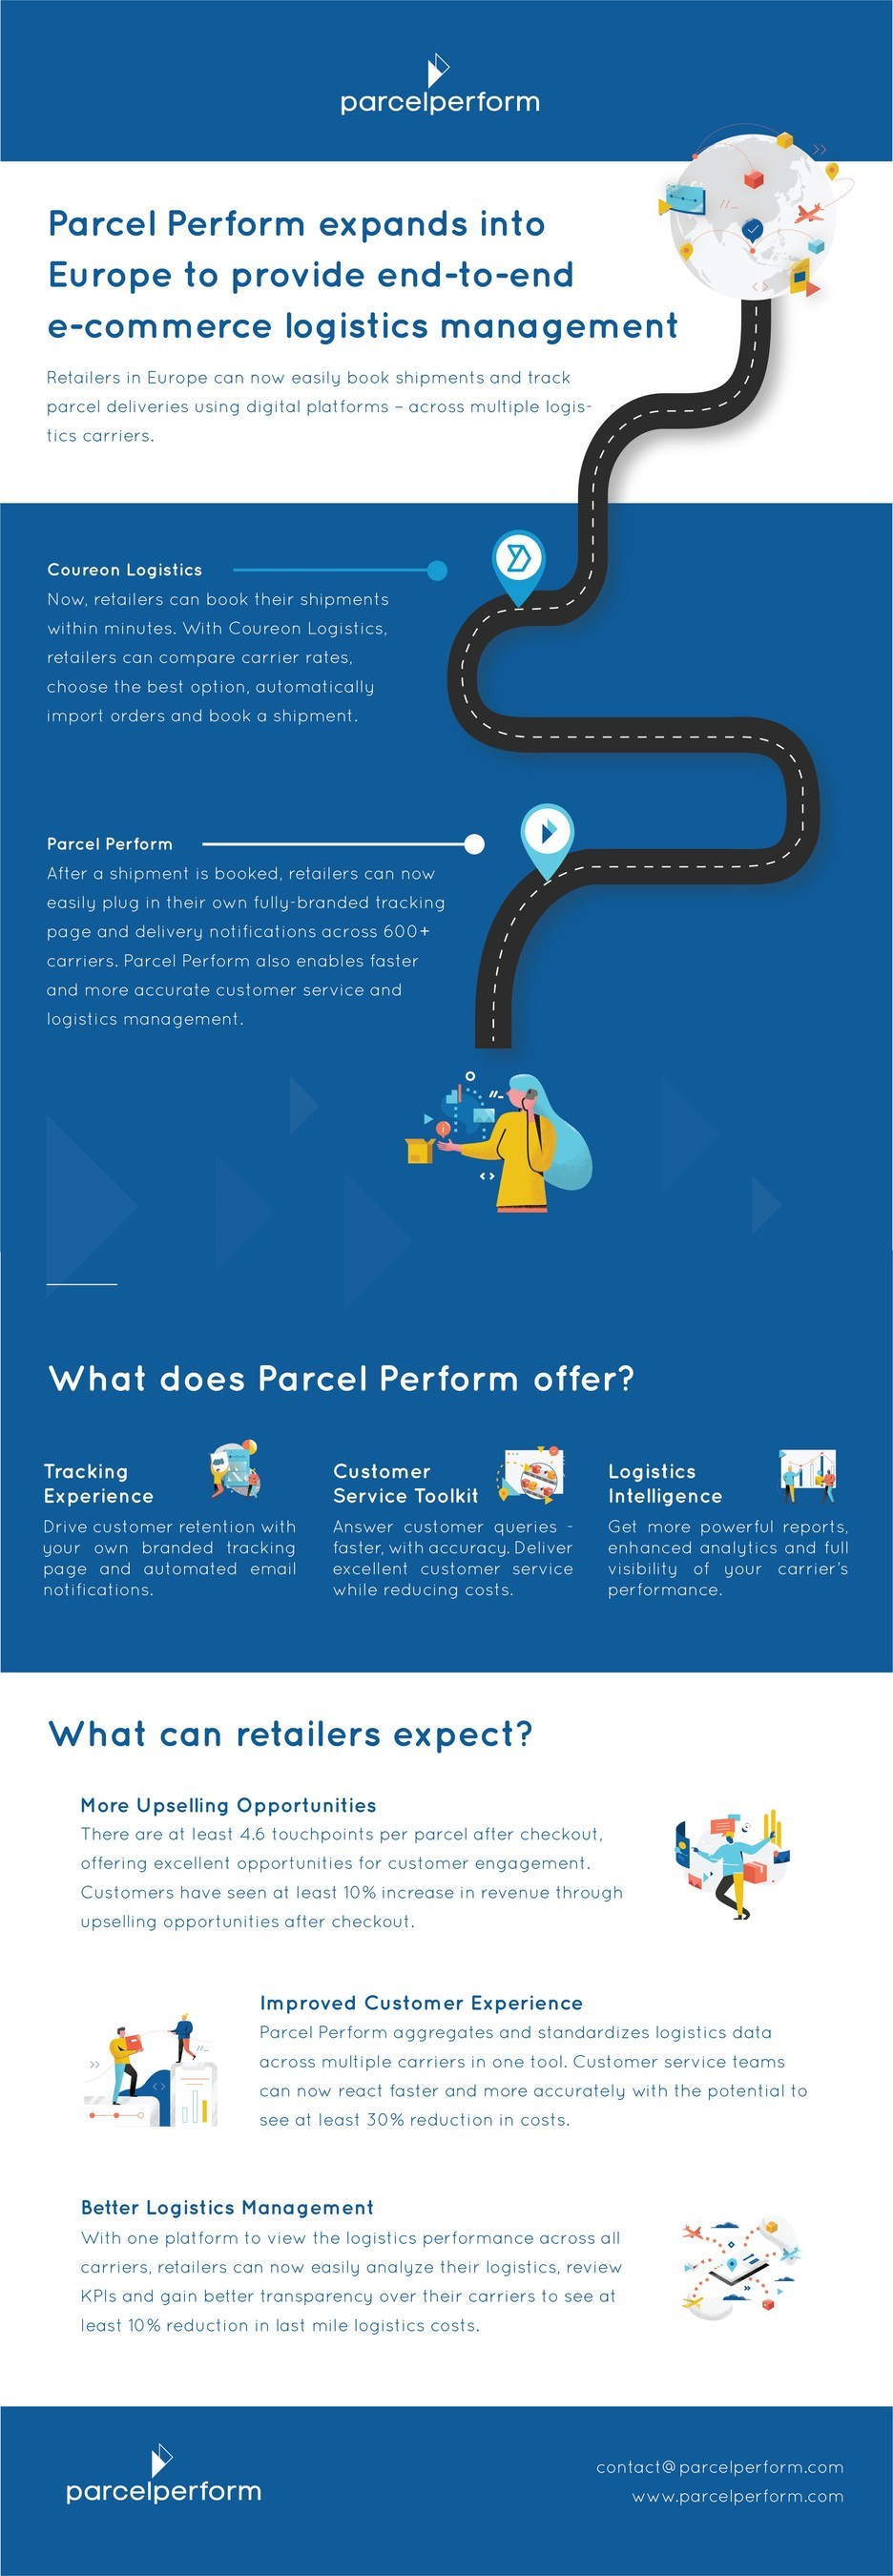 Parcel Perform expands into Europe and partners Coureon Logistics